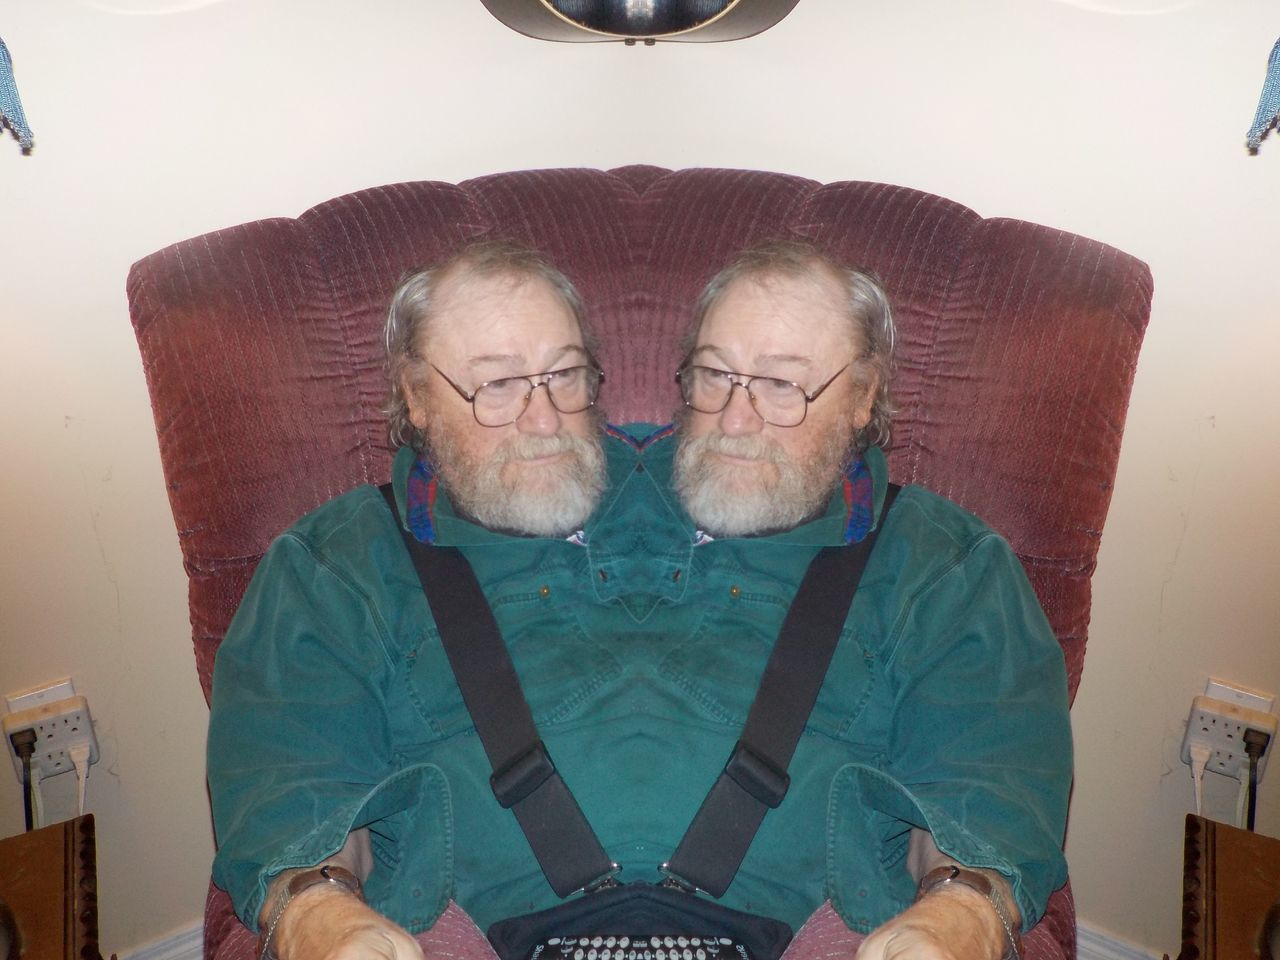 senior adult, senior men, eyeglasses, two people, front view, beard, indoors, home interior, looking at camera, casual clothing, happiness, senior women, togetherness, smiling, portrait, real people, sitting, senior couple, day, young adult